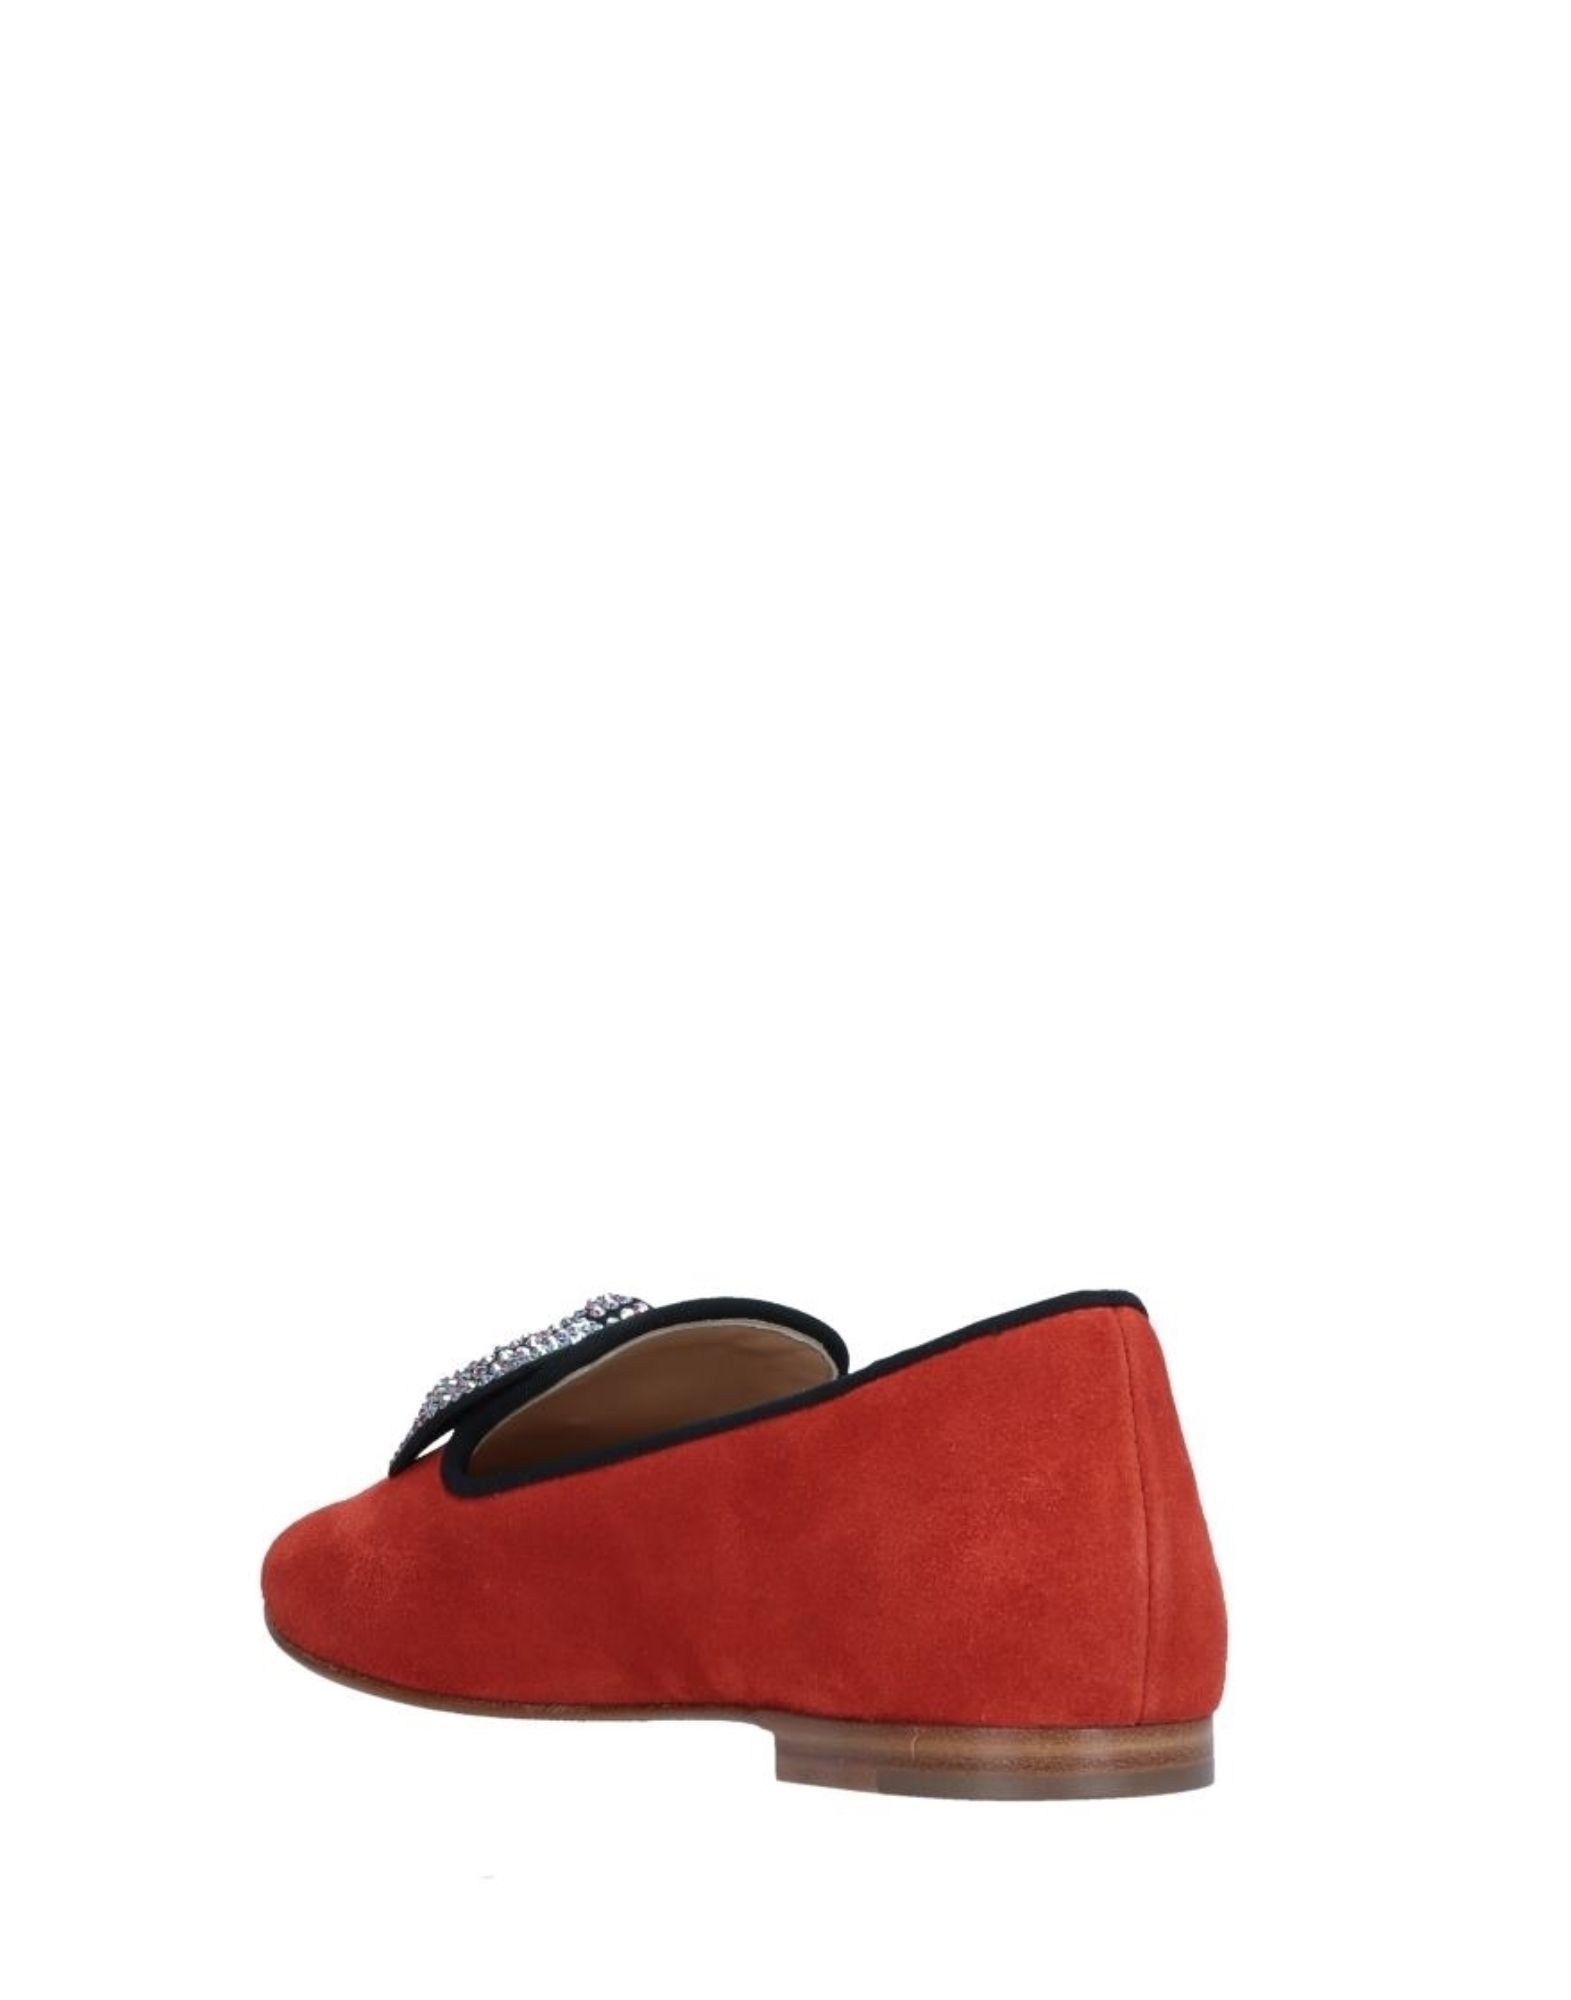 Giuseppe Zanotti Red Leather Loafers